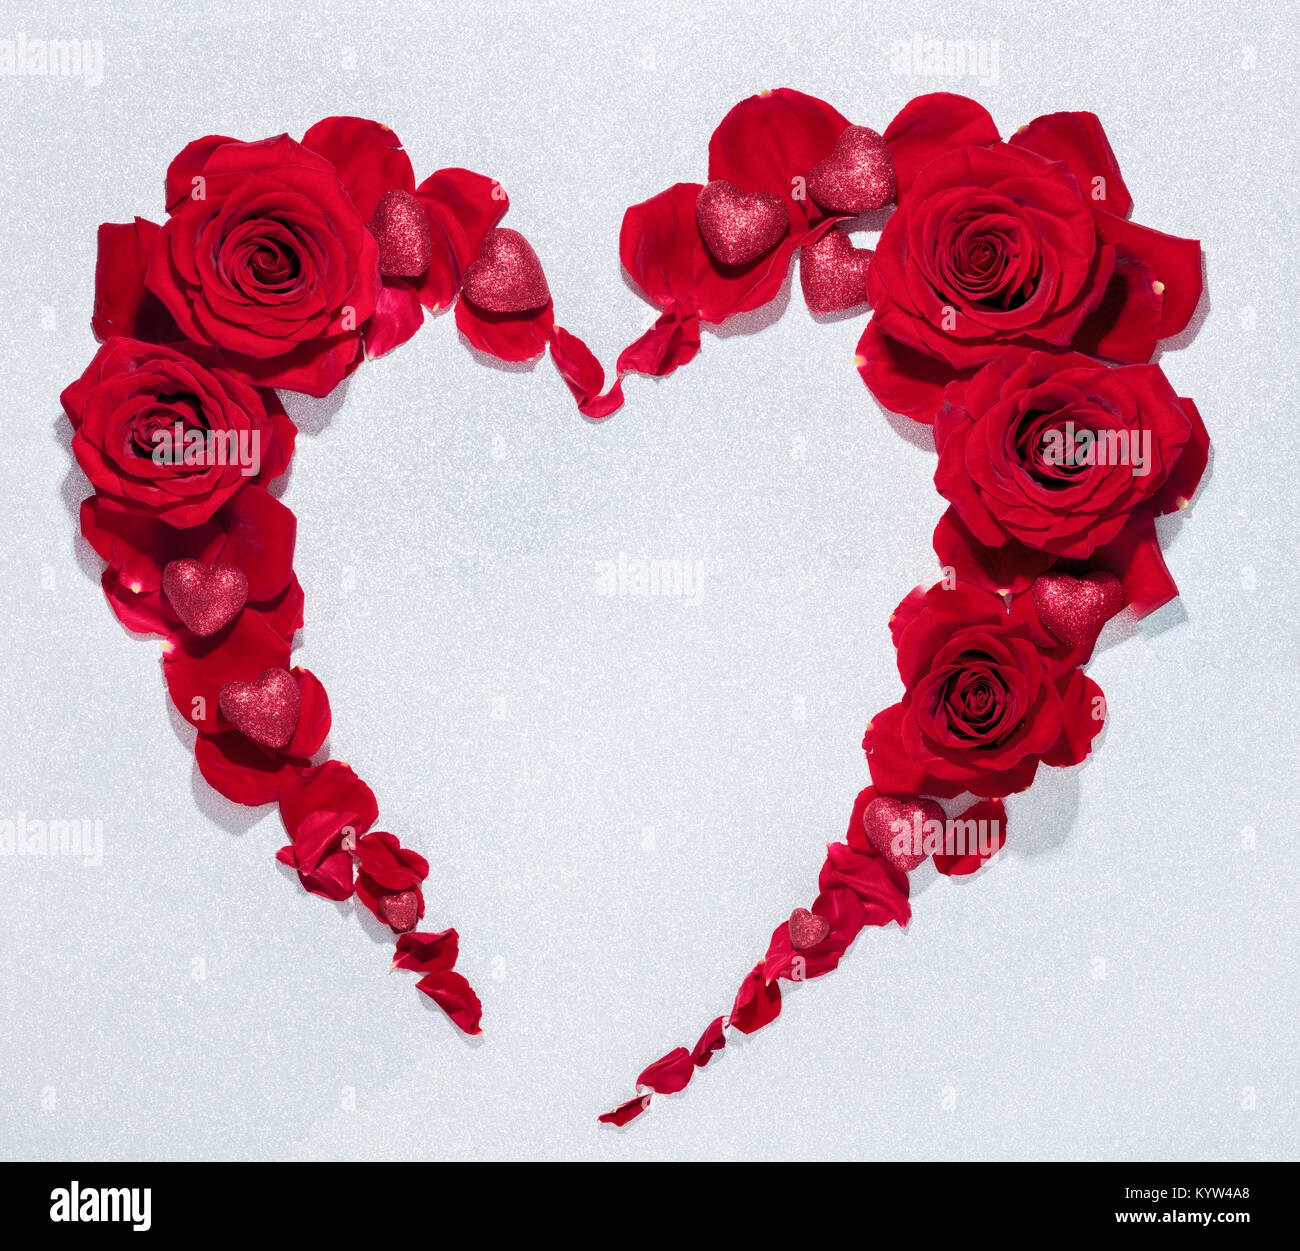 Red Rose Flower Bouquet Heart Shape Stock Photo Alamy